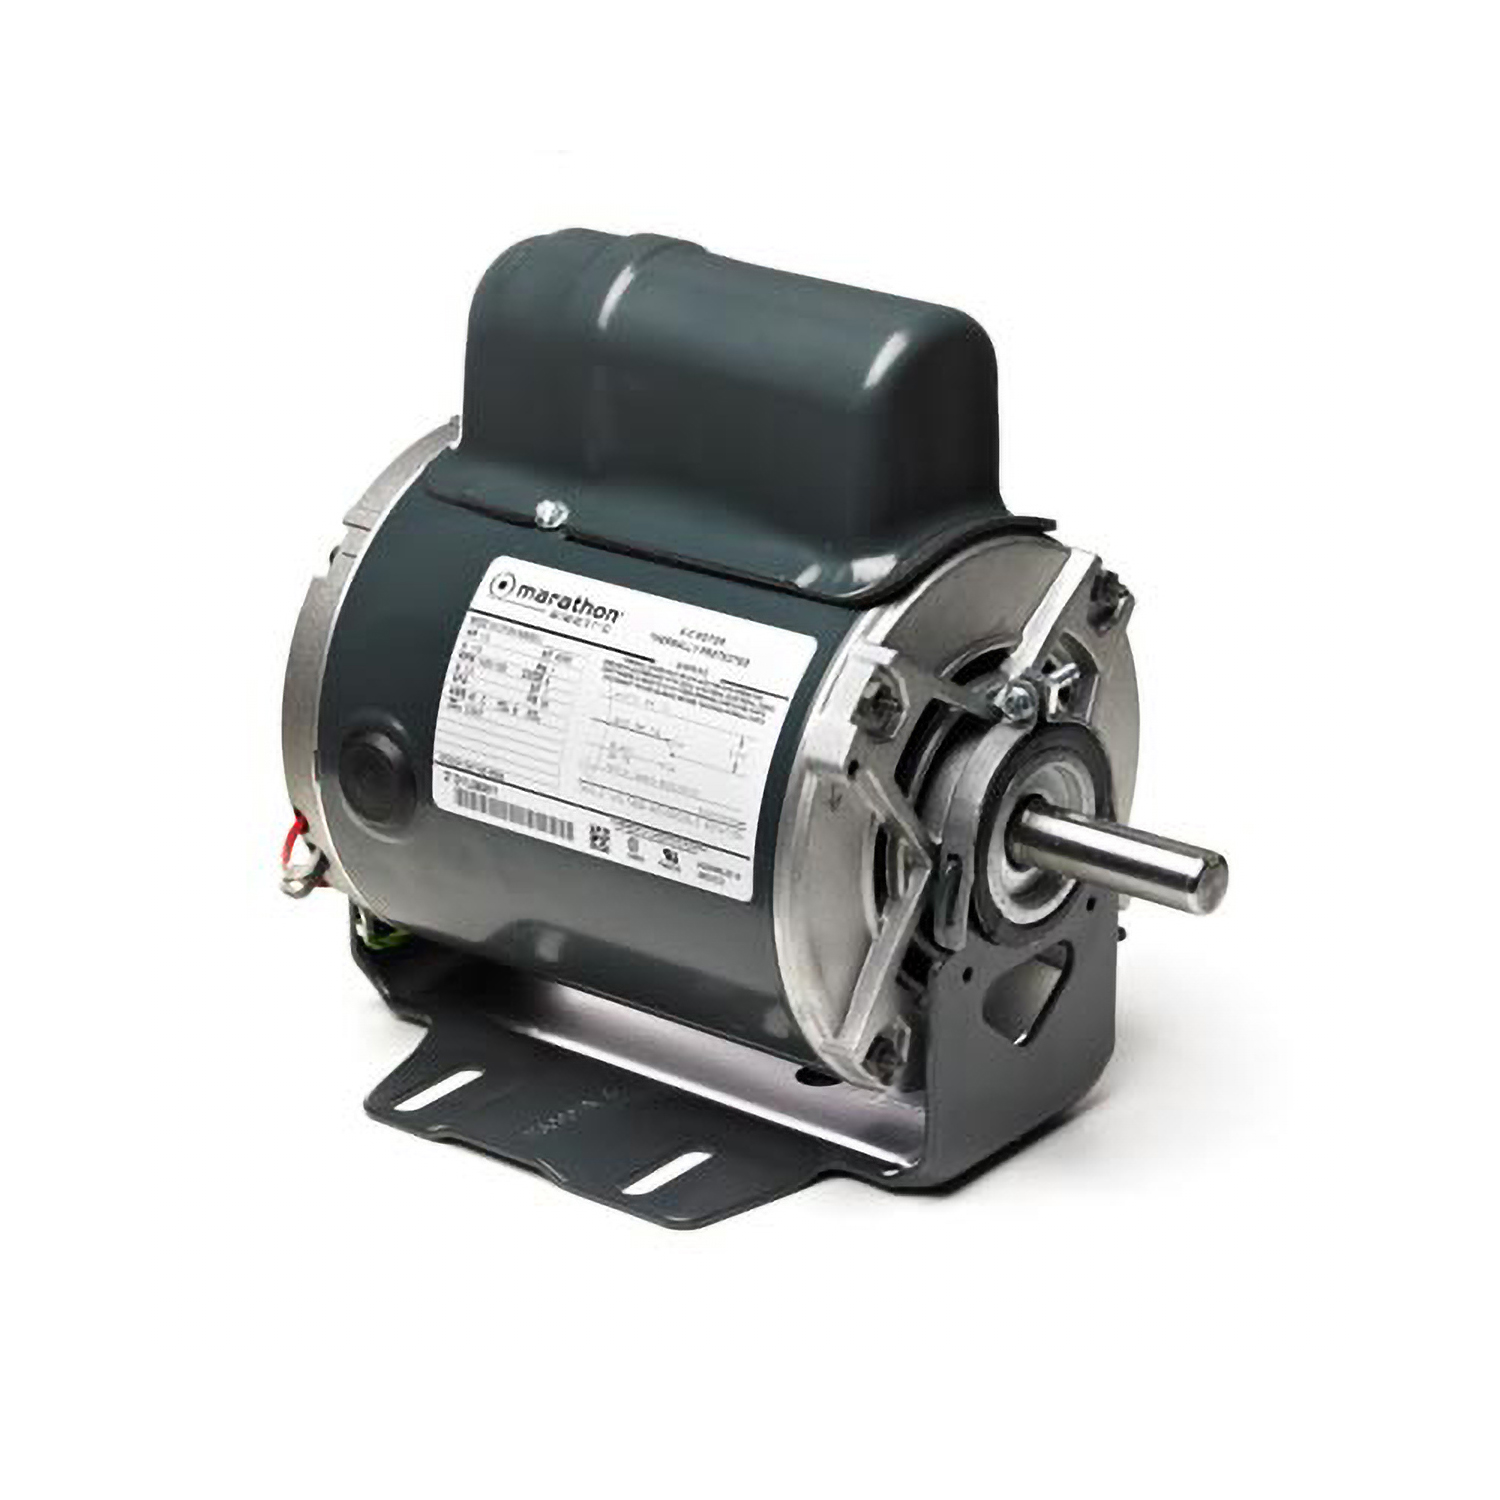 48 FR Capacitor Start Fan and Blower Duty Mtr, 1/4 HP, 1725 RPM, 115/230 V